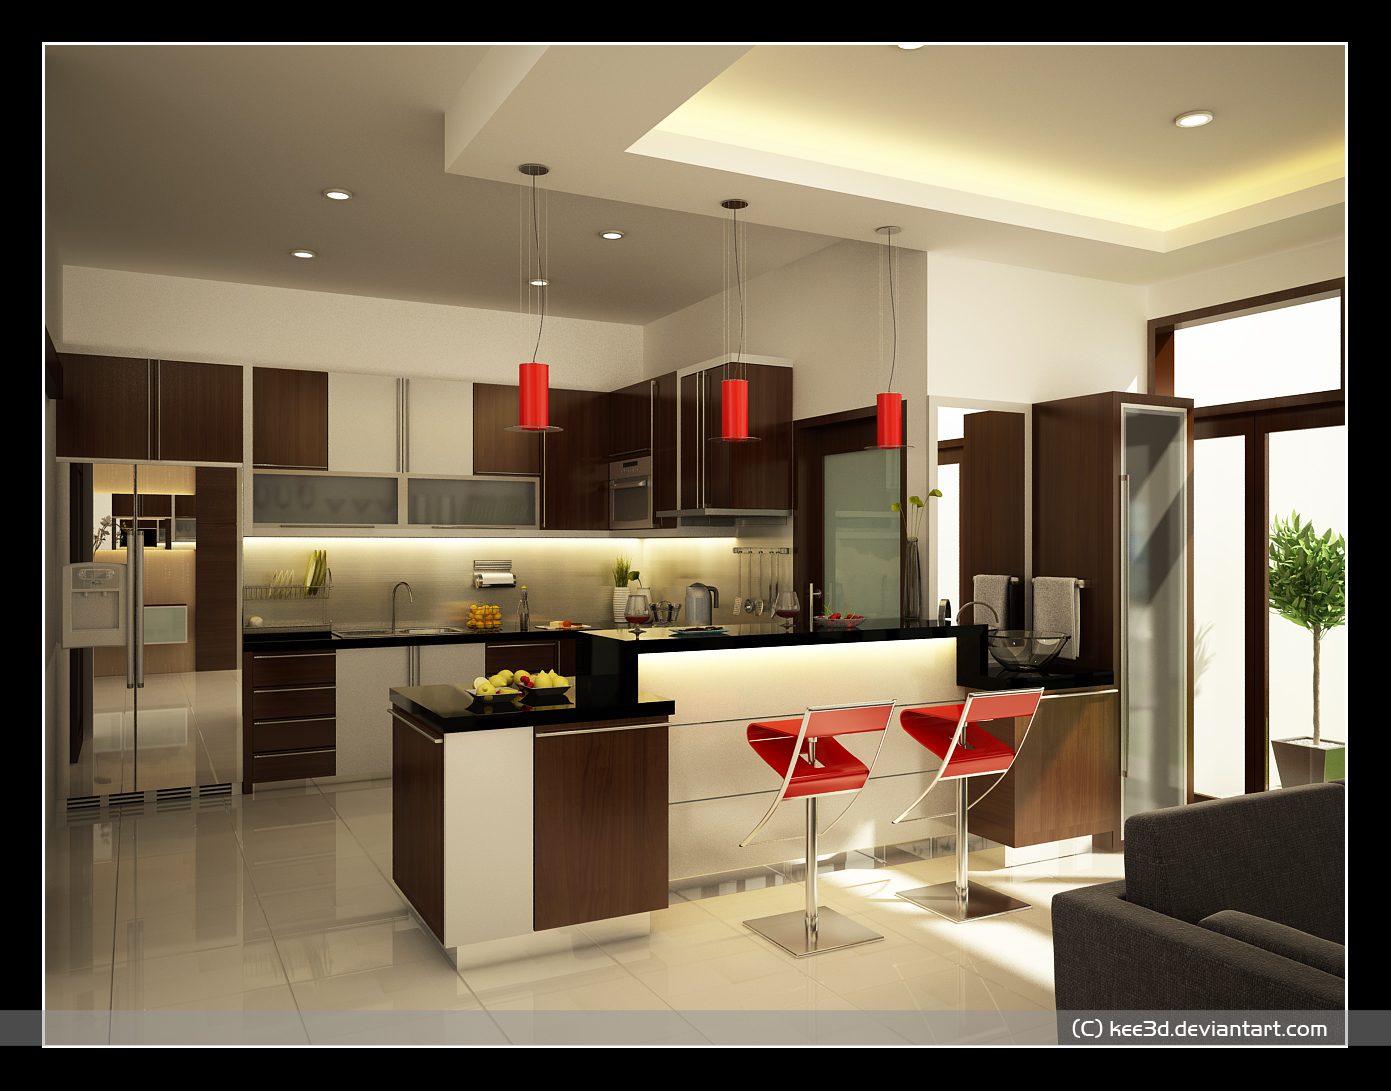 kitchen design ideas perfect decoration | Kitchen Design Ideas